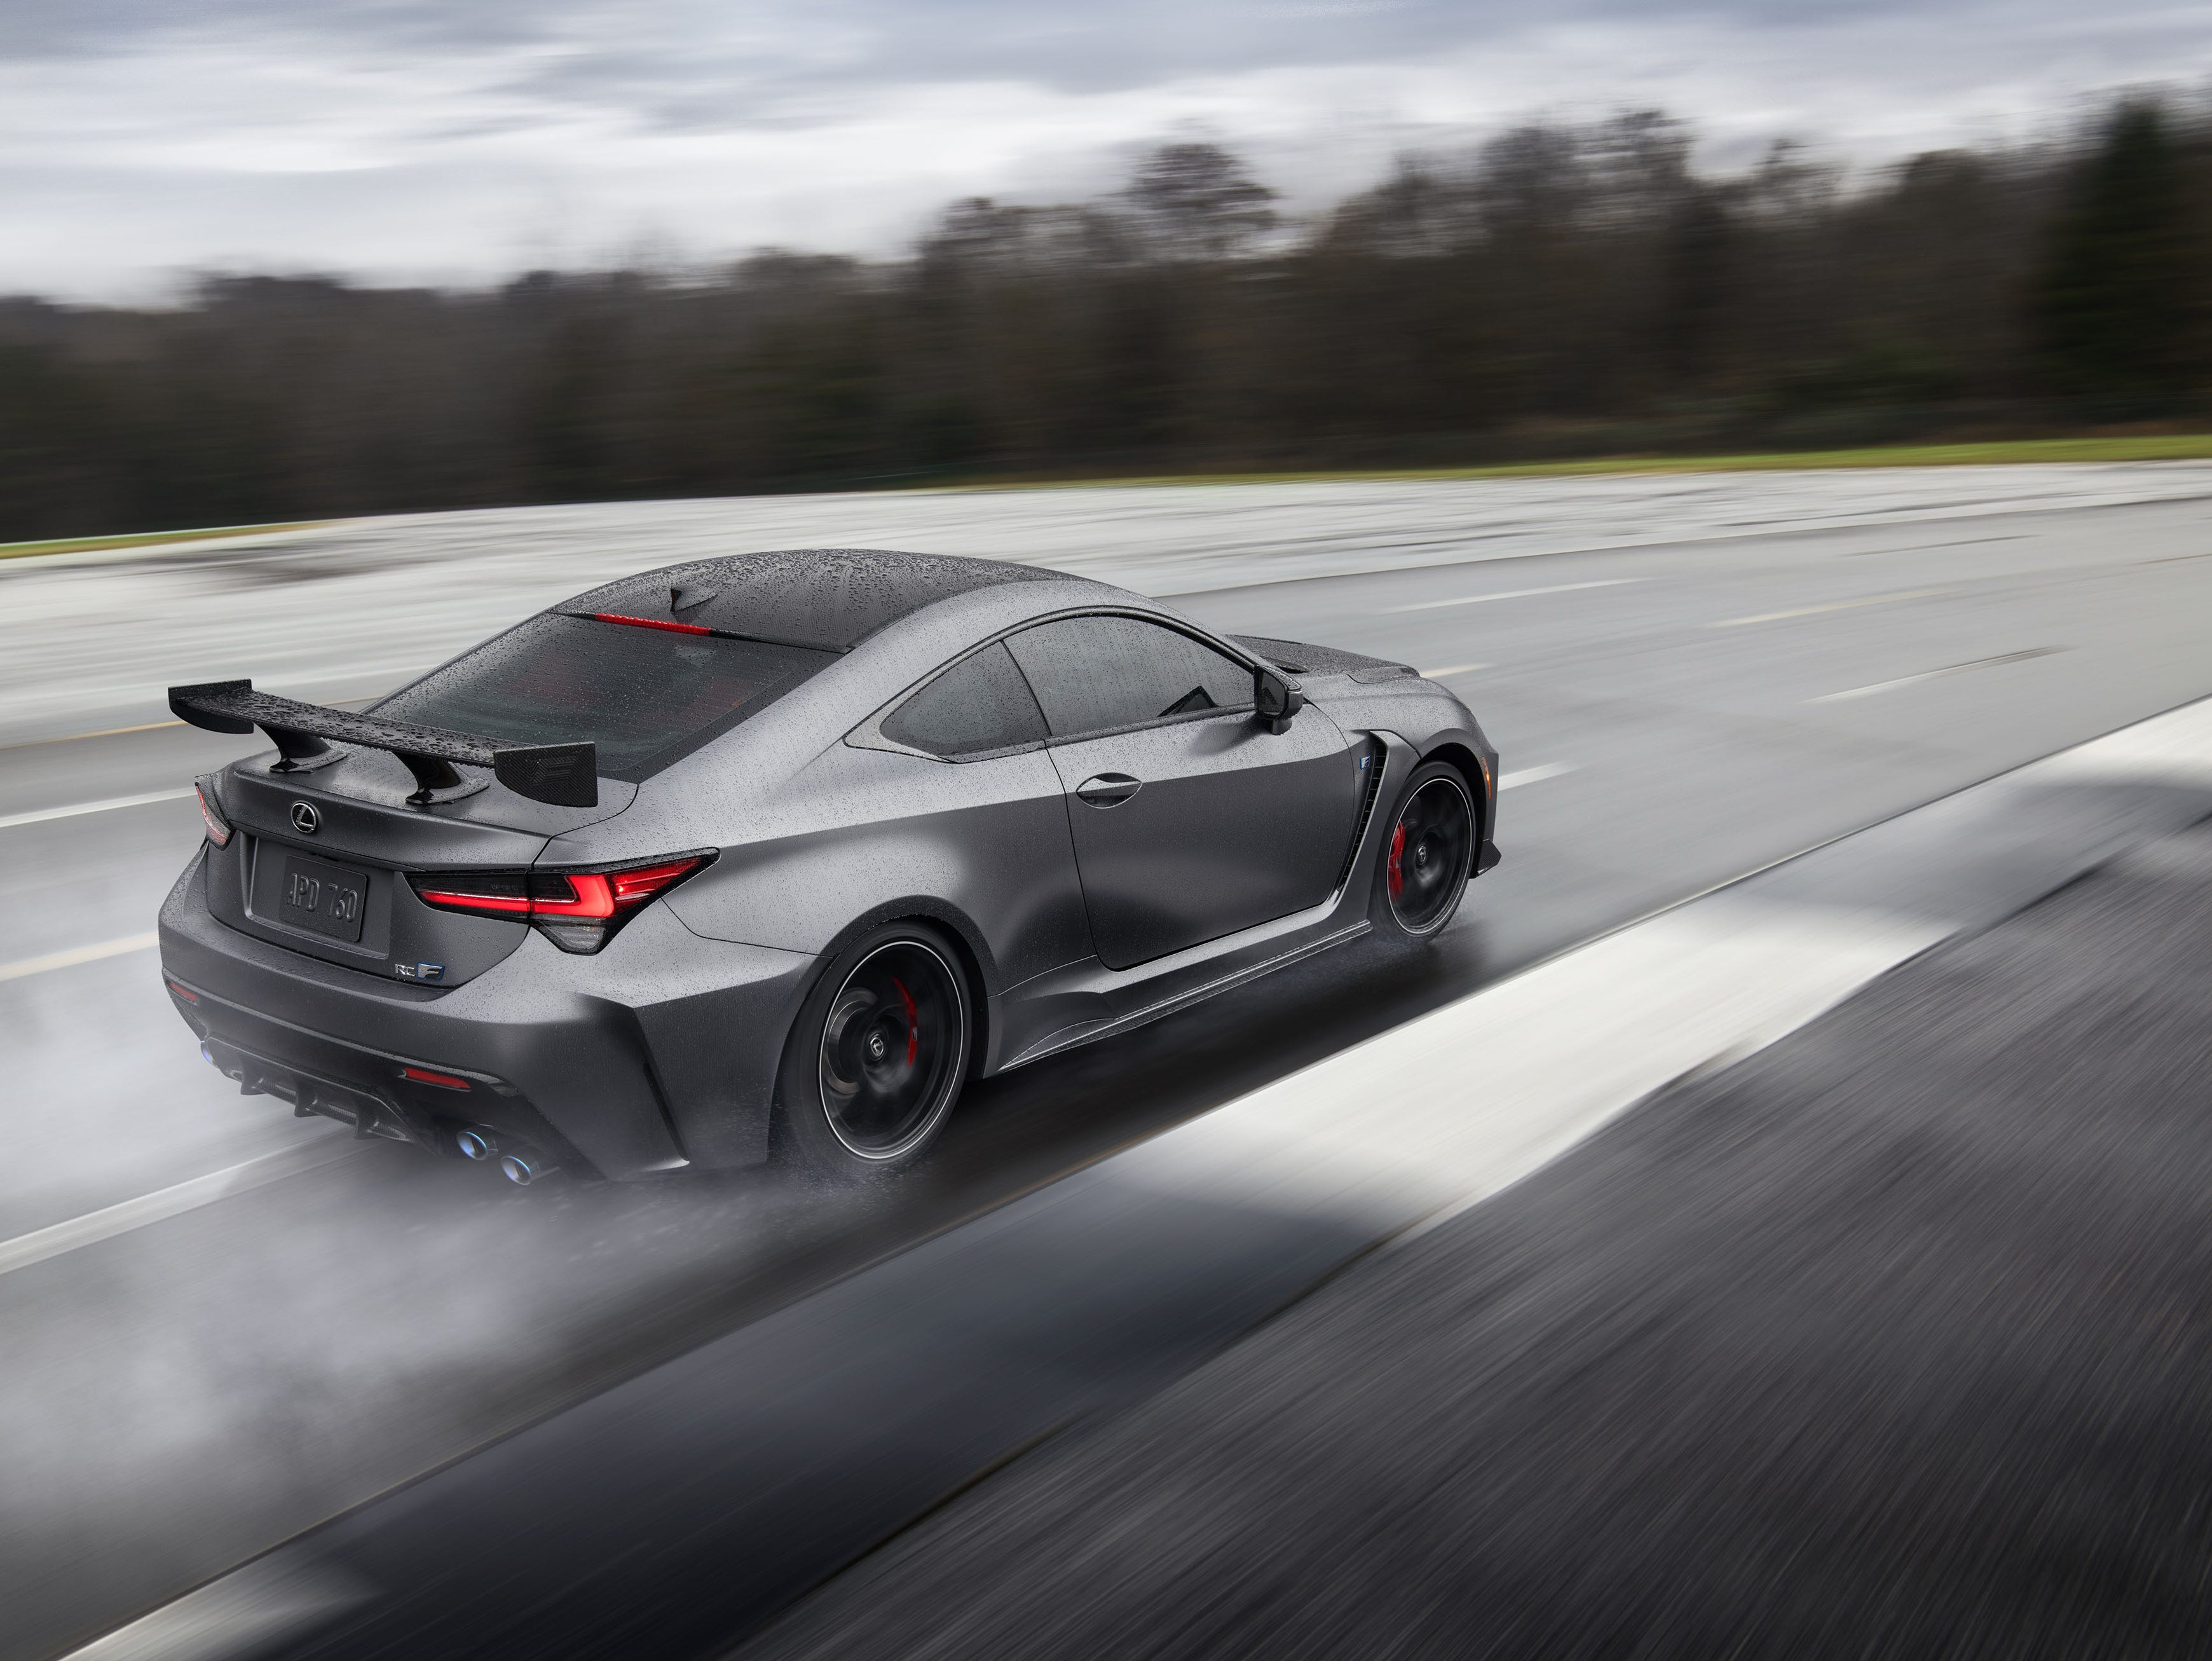 """""""The RC F now includes electronic launch control as standard. With a push of the button on the console, the system automatically adjusts the traction and throttle control for maximum acceleration from a stop. All the driver has to do is press and hold the brake pedal, engage the system, floor the accelerator to bring up the engine speed and release the brake. Using the system results in a 0-to-60mph time of just 4.2 seconds."""""""